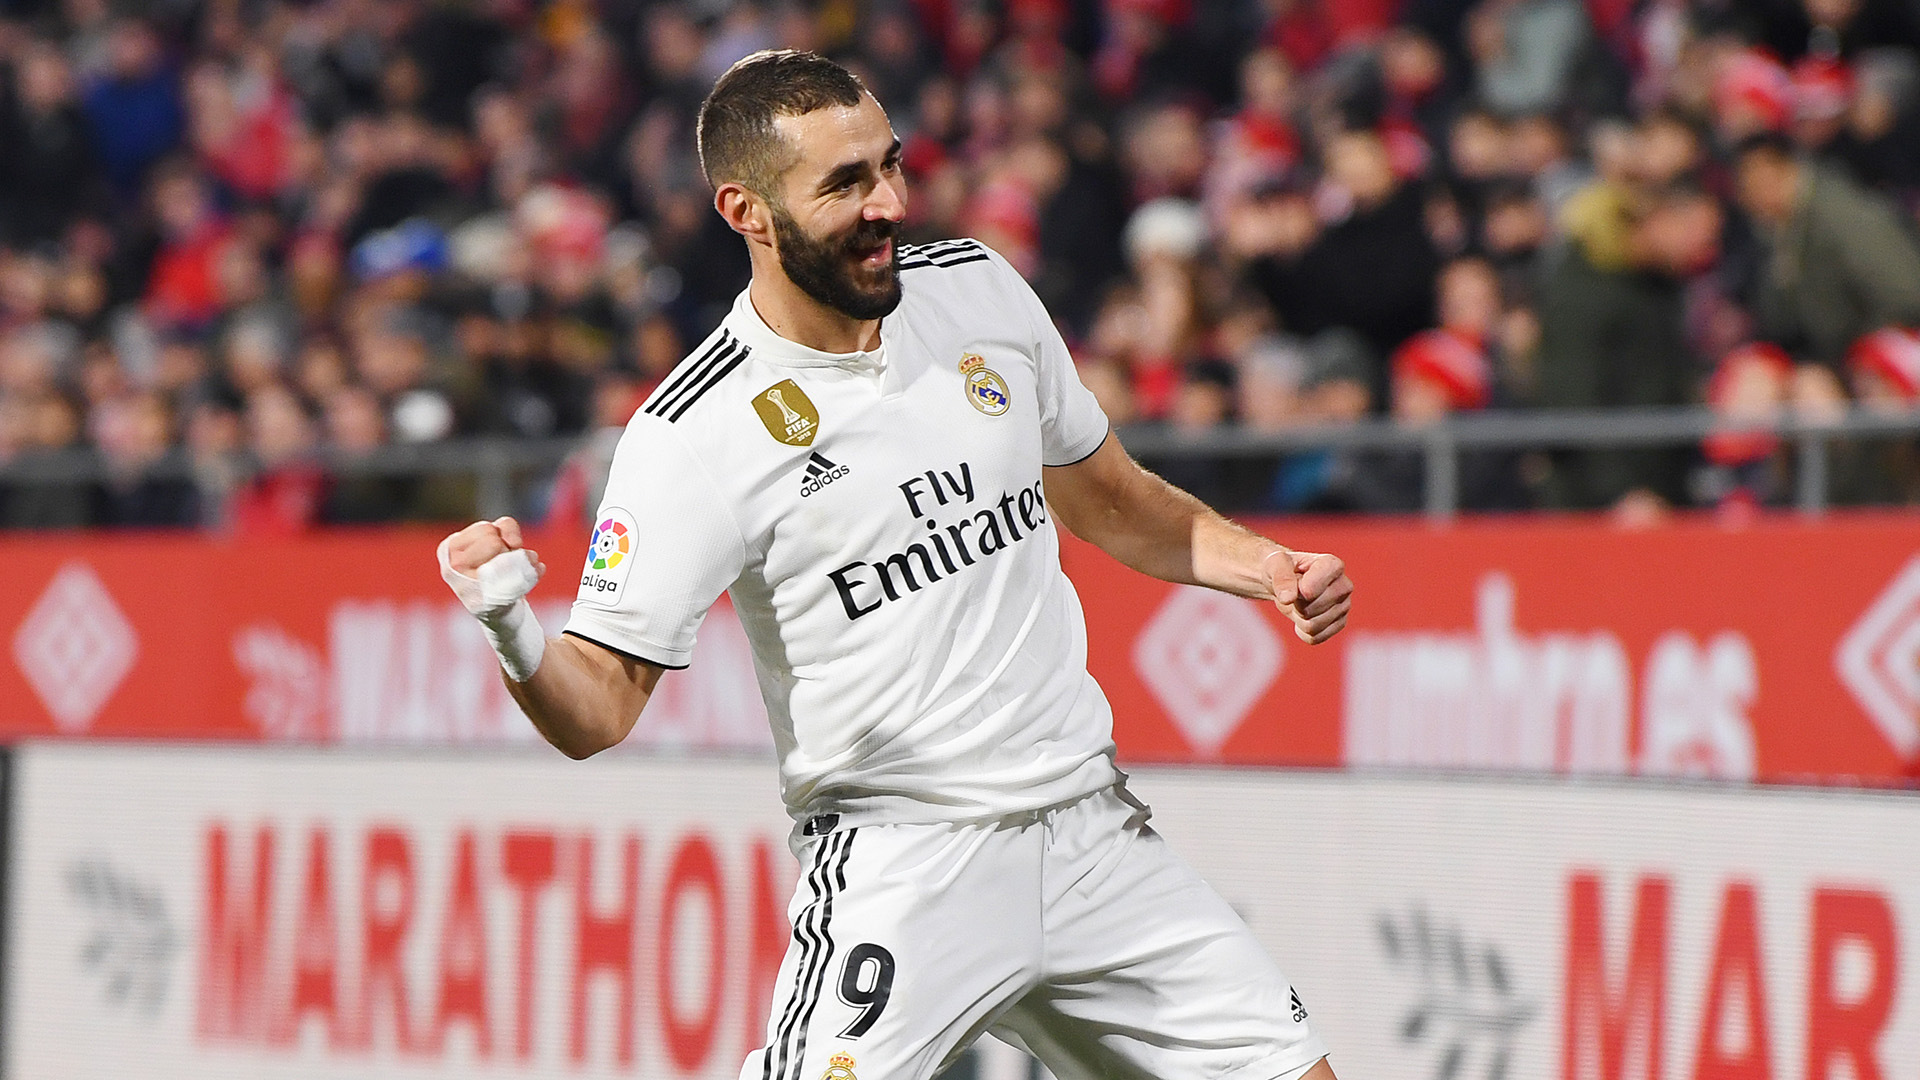 Real madrid v rayo vallecano betting preview bills jets line betting